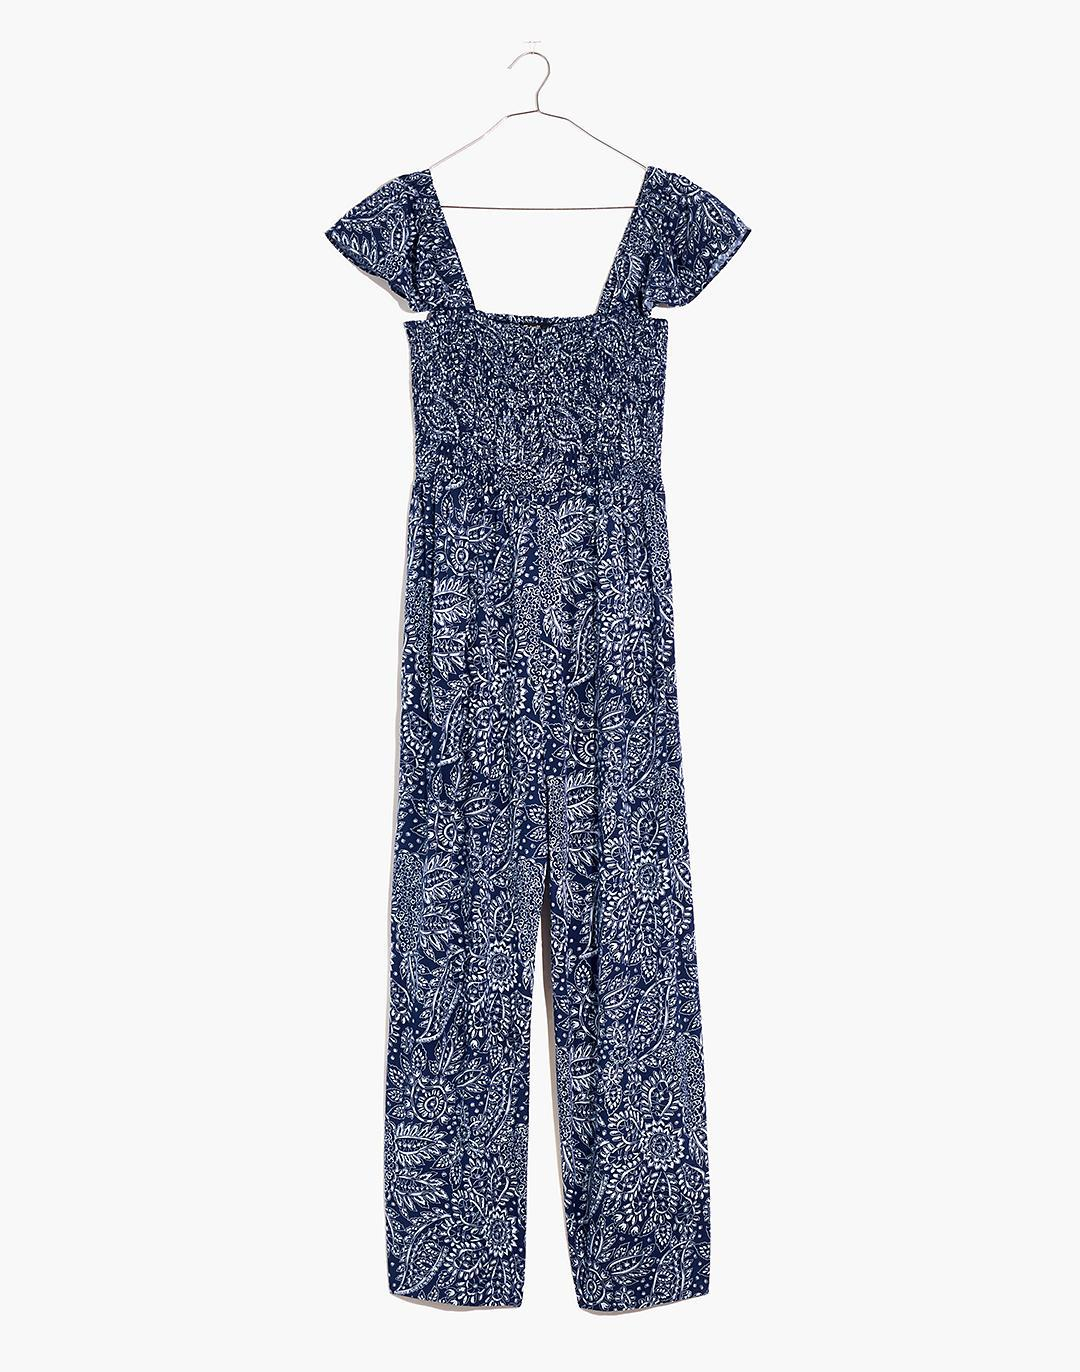 Petite Lucie Smocked Wide-Leg Jumpsuit in Paisley Garden